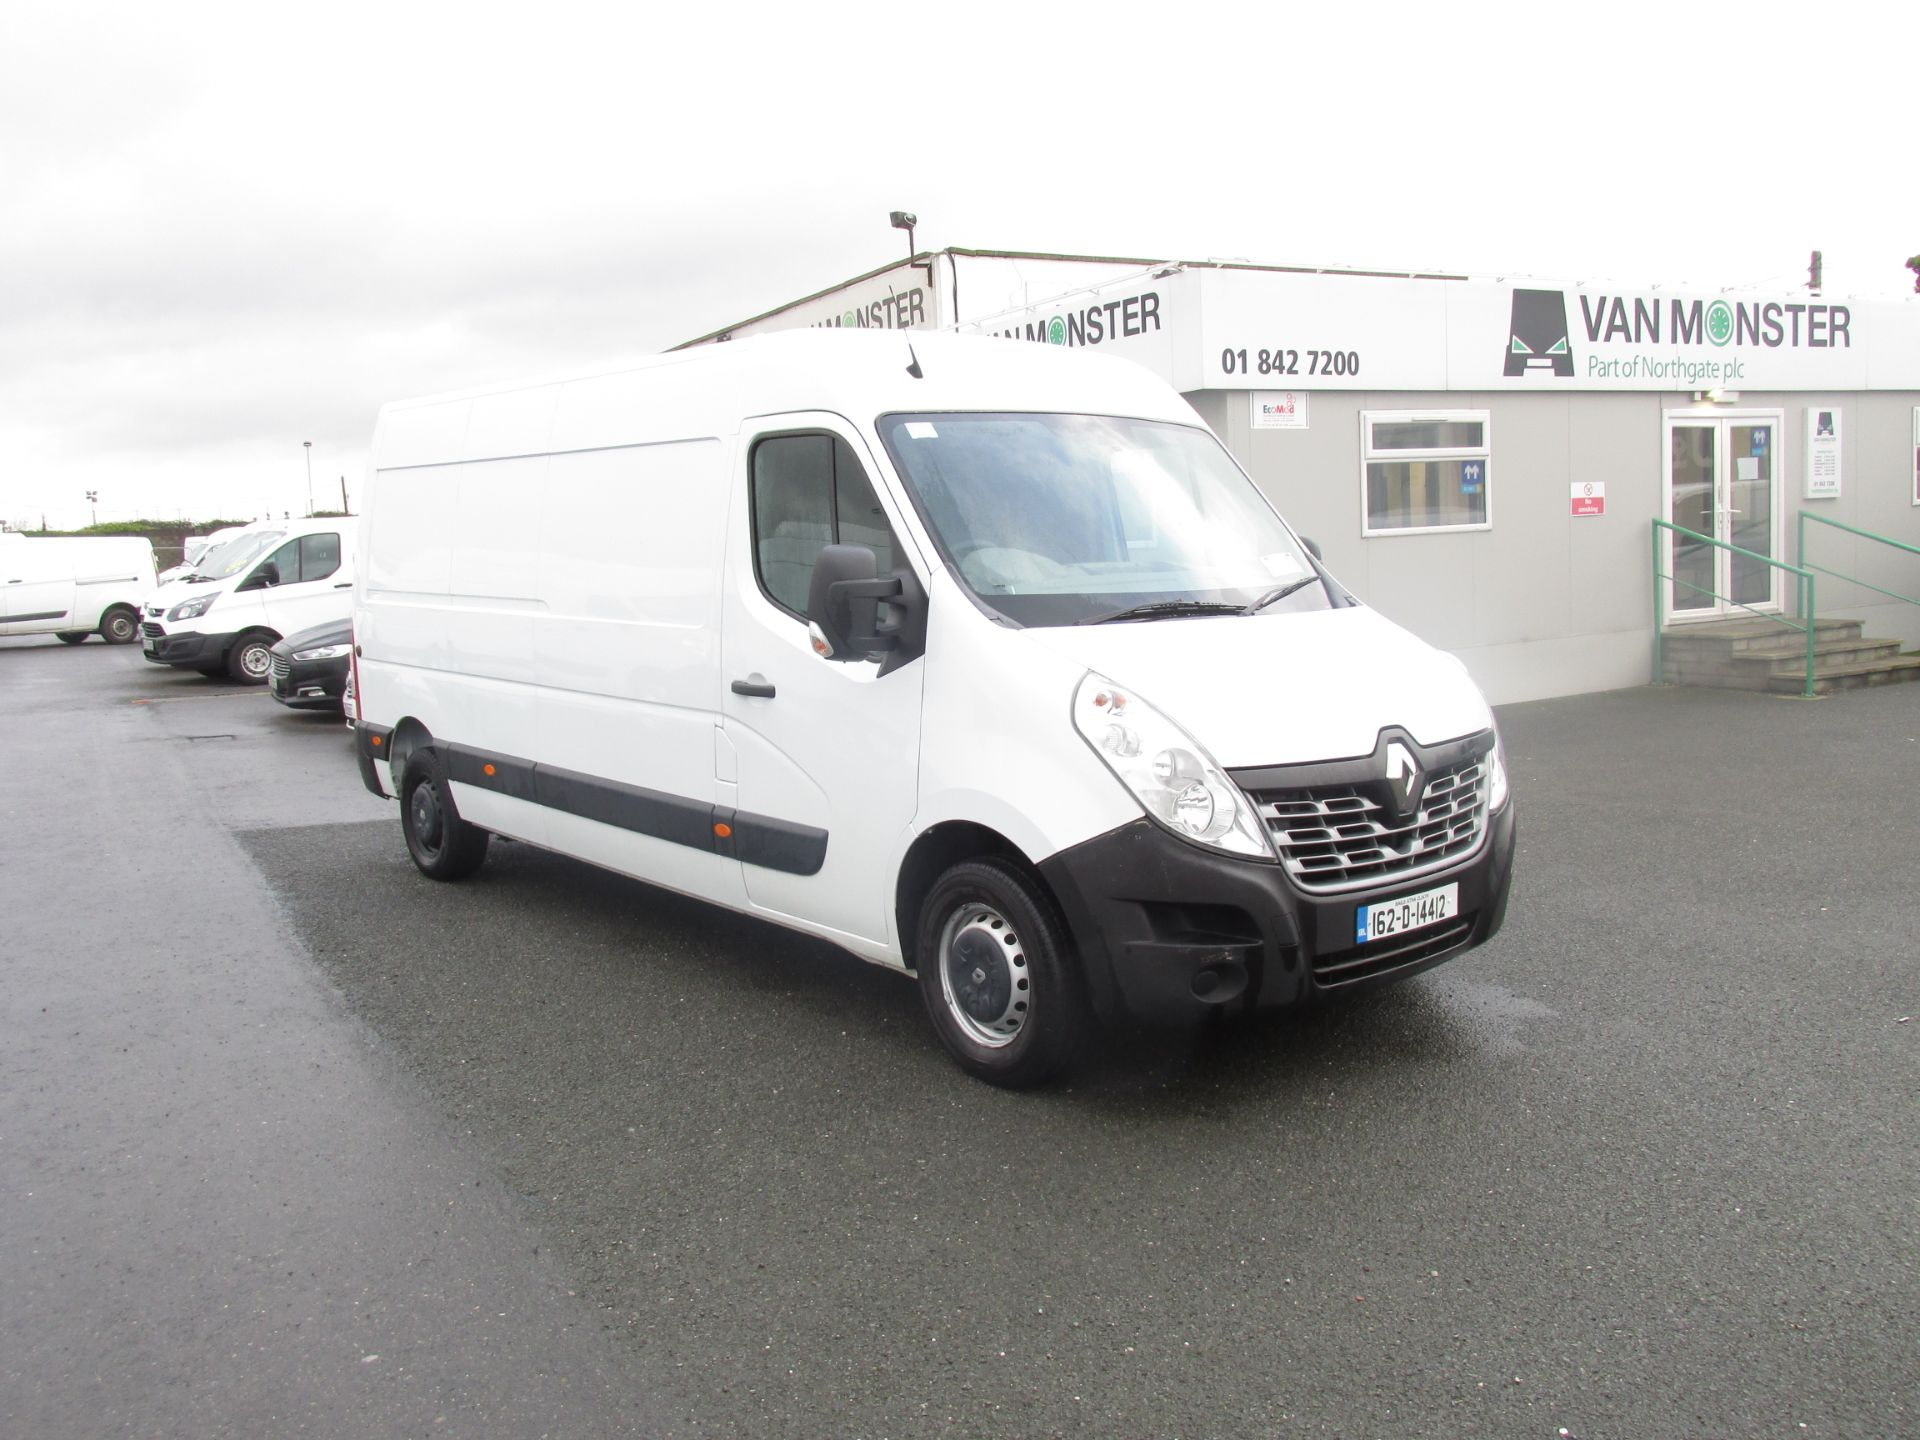 2016 Renault Master III FWD LM35 DCI 125 Business 3DR (162D14412)